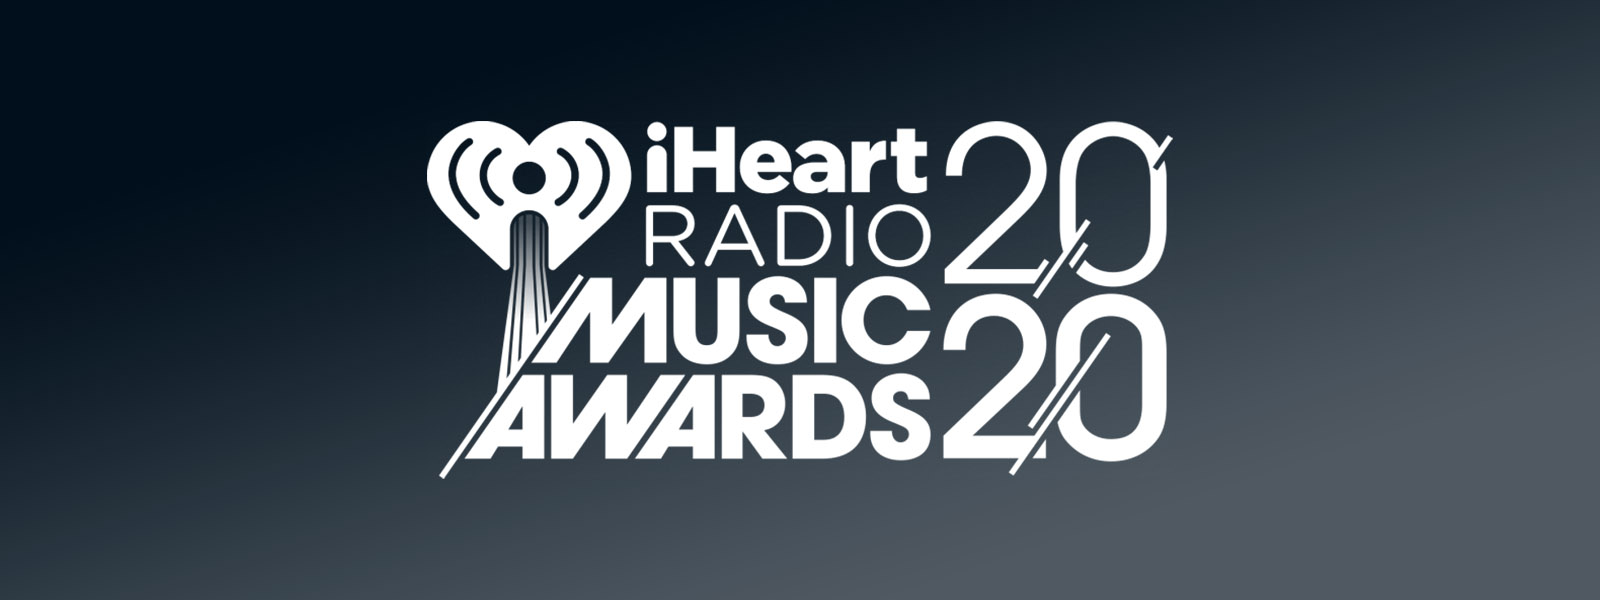 iHeartRadio Music Awards Announce Winners For 7th Anniversary Show